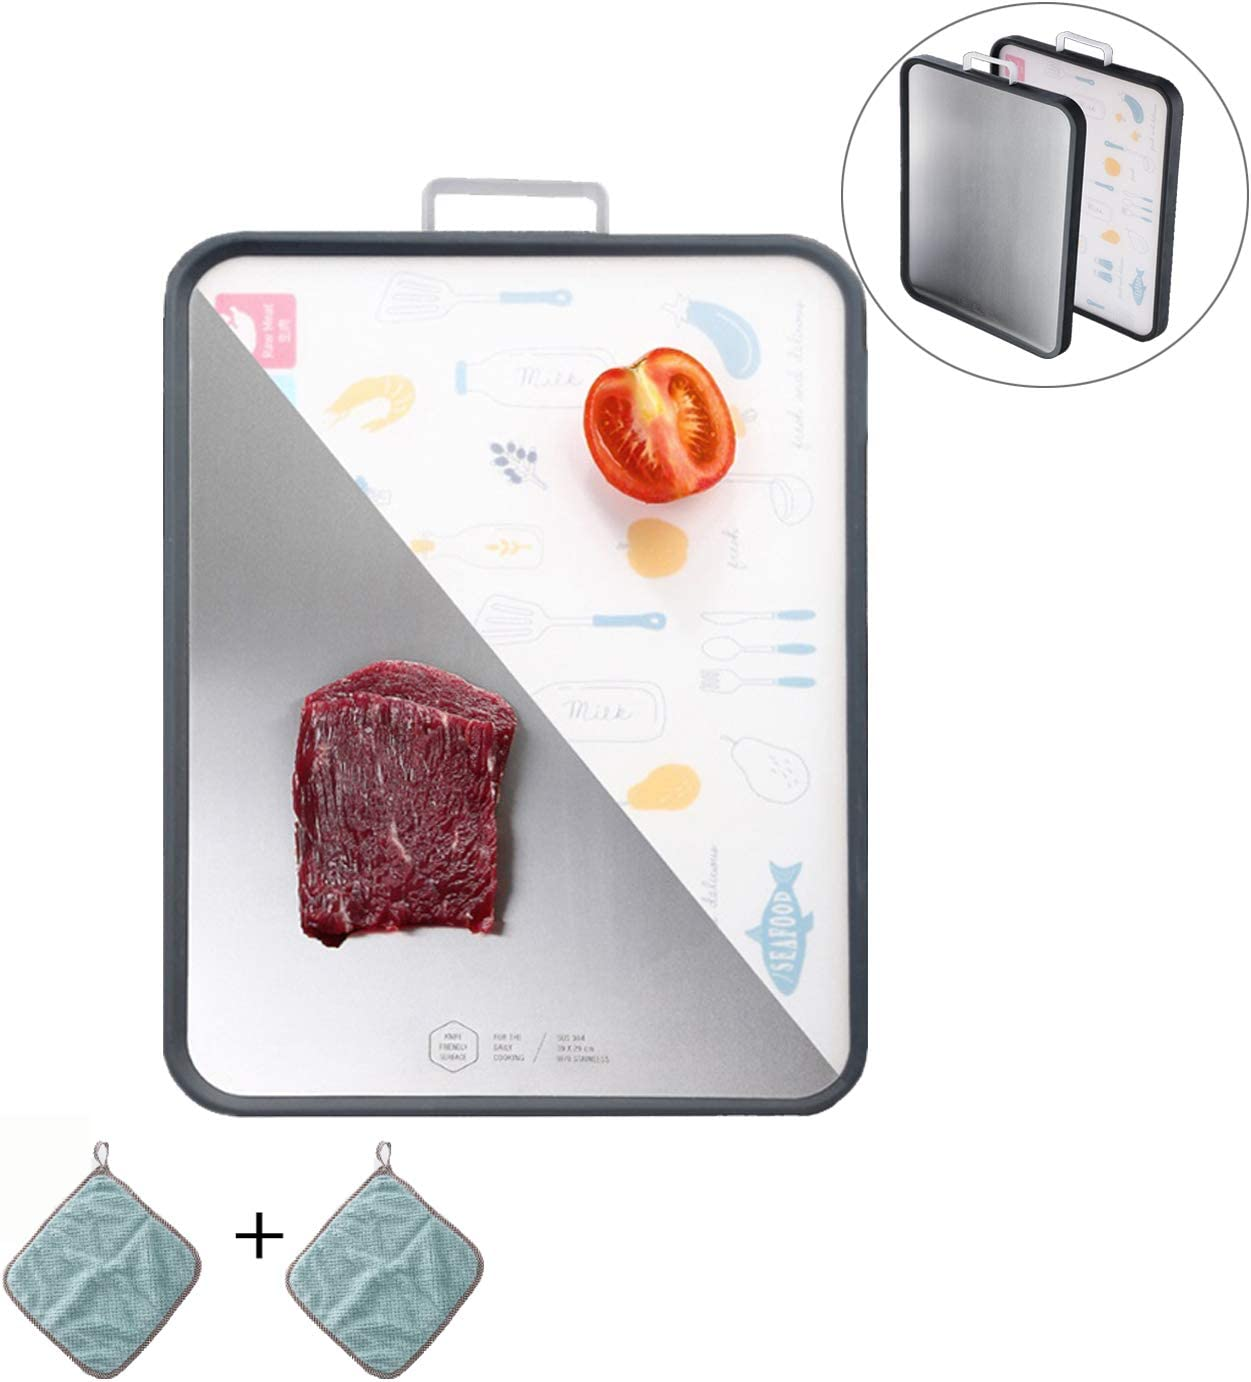 "Stainless Steel Cutting Board With Handle Large Size 11"" x 15"" Dishwasher Easy Clean 1"" Thick Non-Slip Double-Sided Multifunctional Chopping Board For Kitchen Meat Fish Vegetable Cheese Butter"